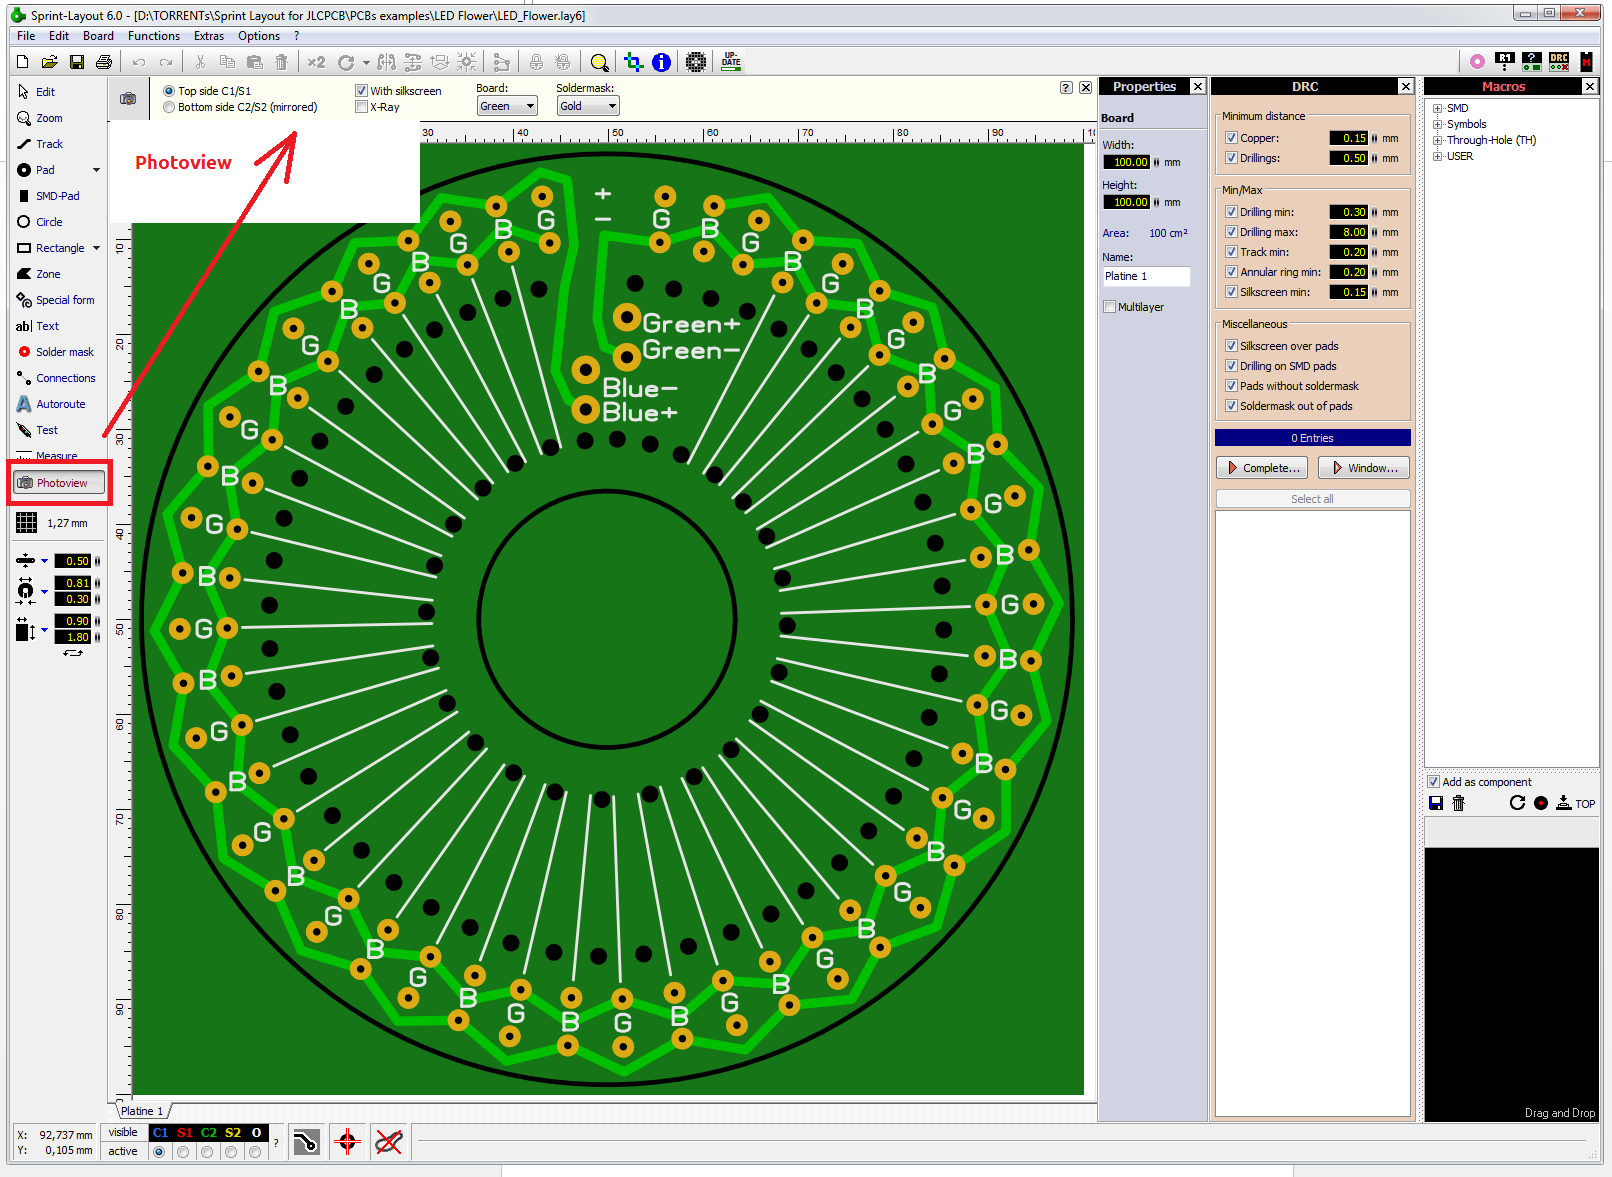 How To Export Sprint Layout Pcb To Gerber Files Jlcpcb Help Support